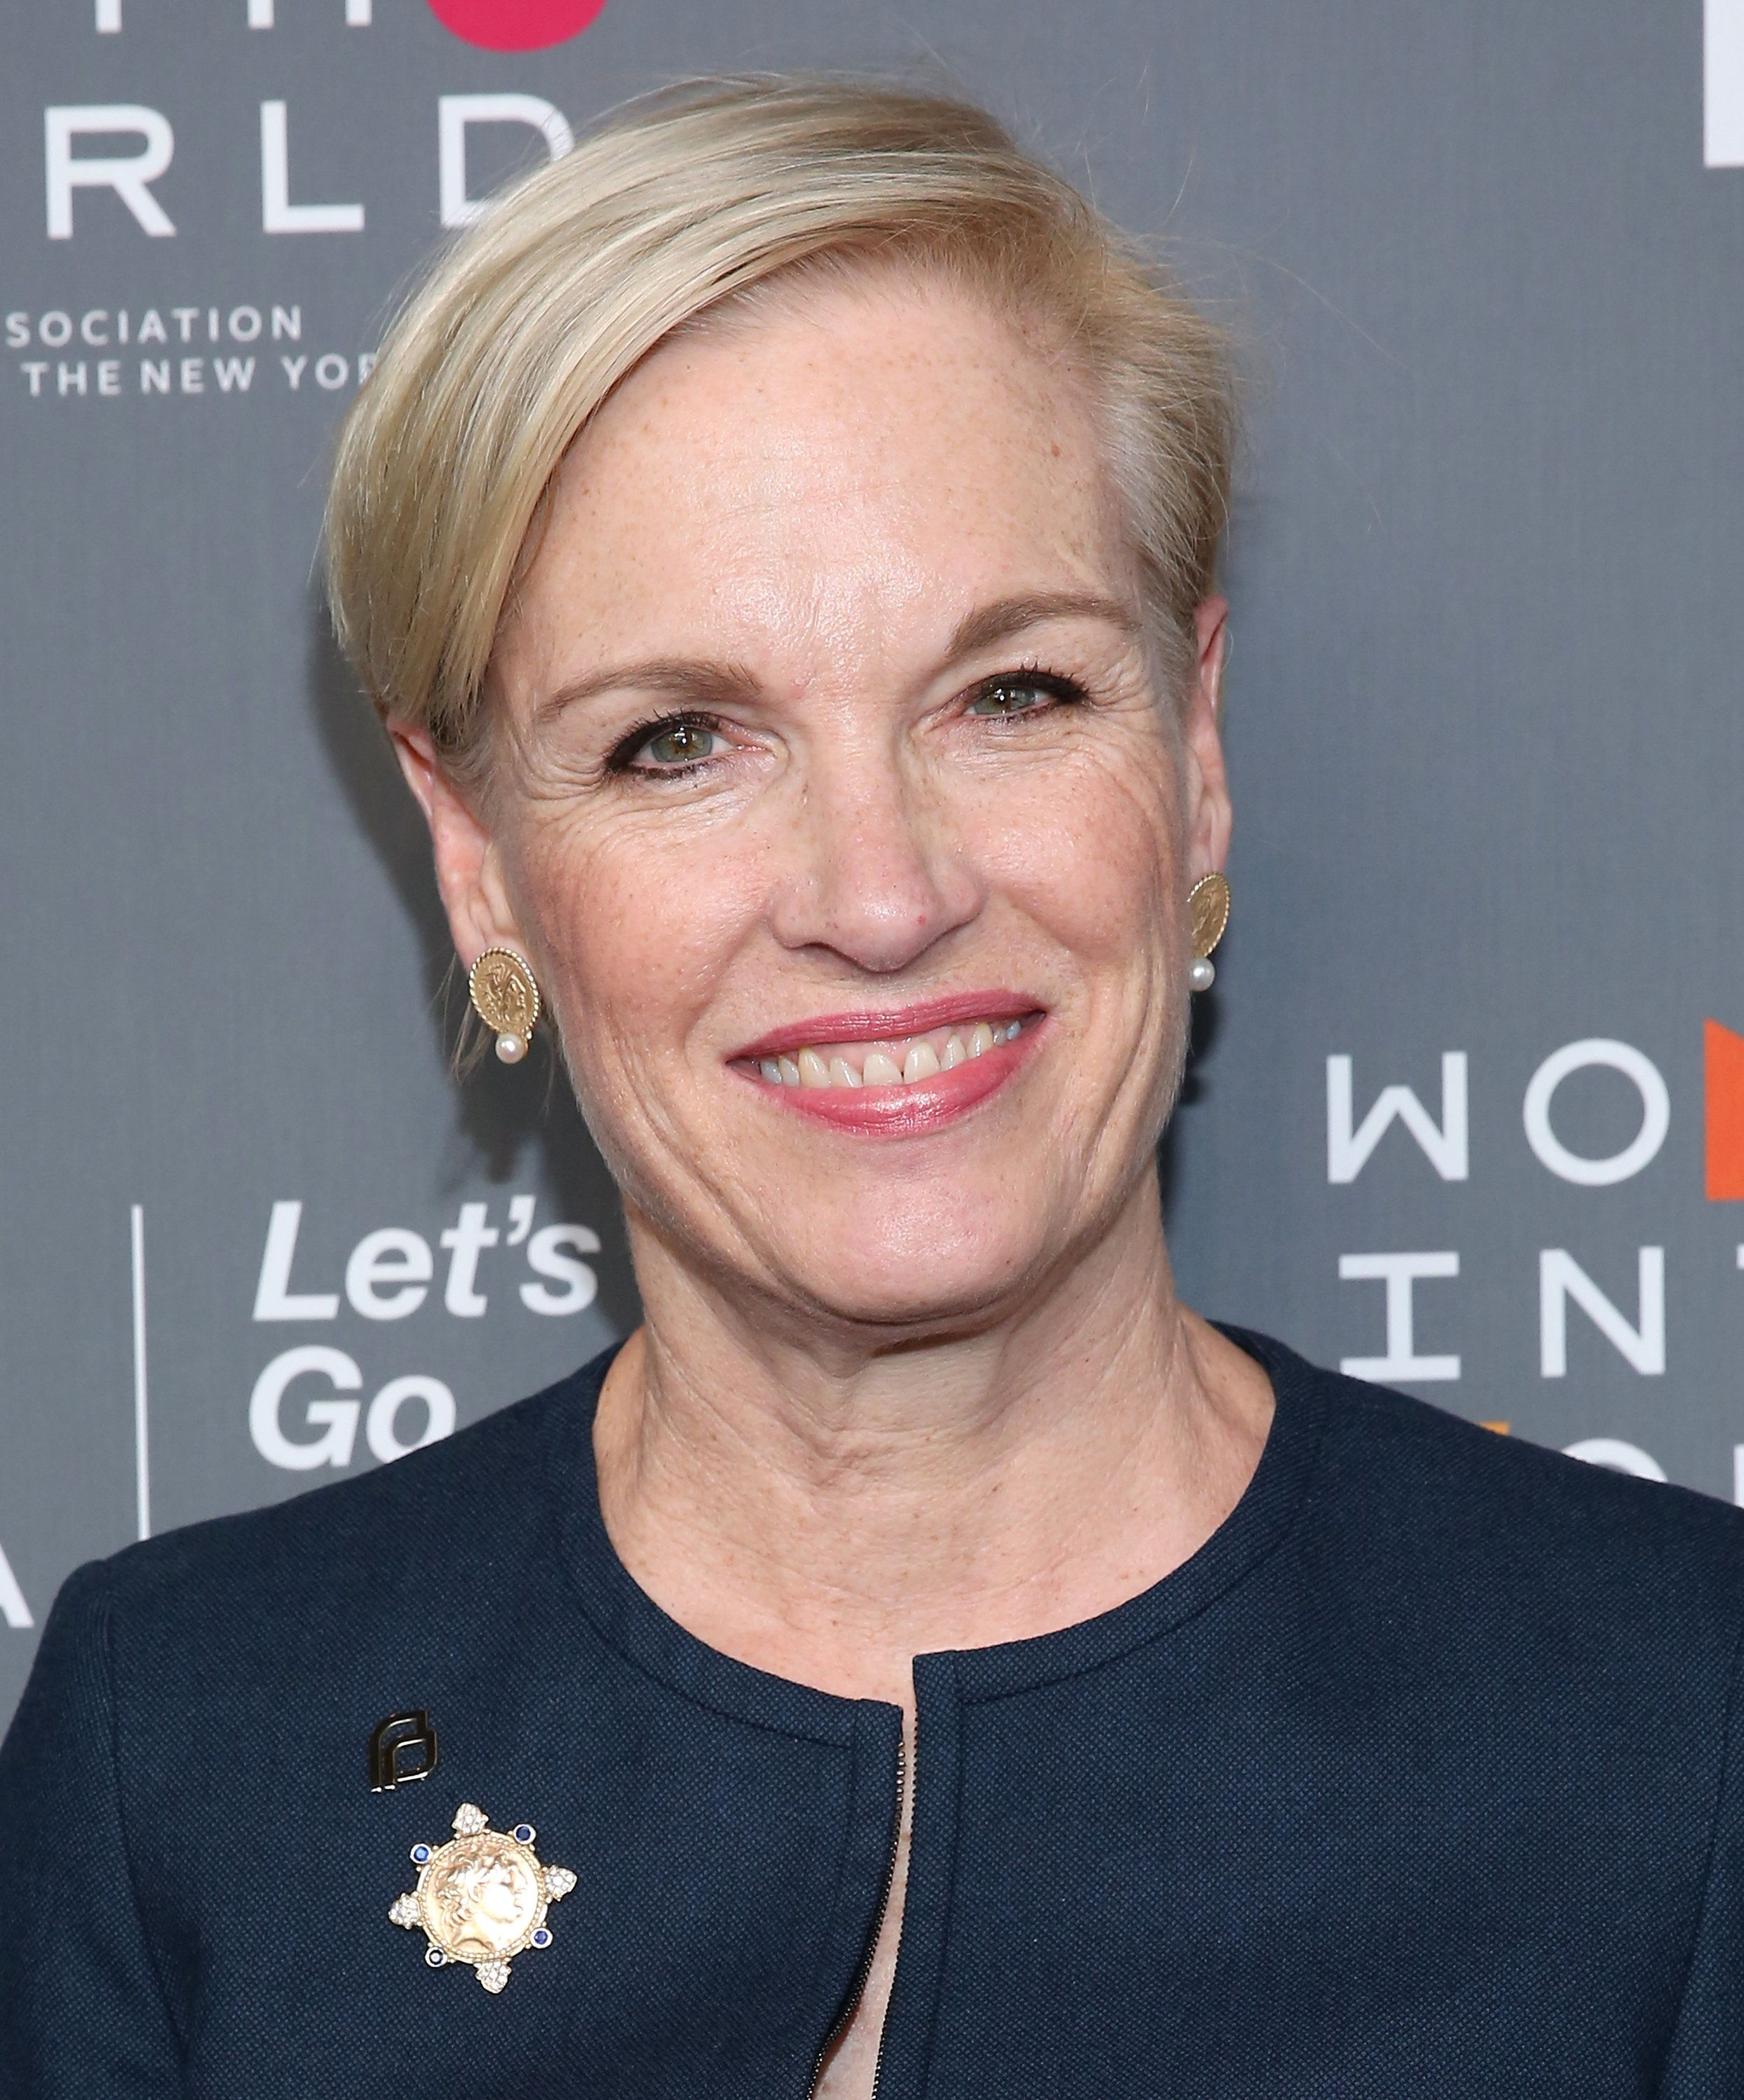 NEW YORK, NY - APRIL 05:  President of the Planned Parenthood Federation of America Cecile Richards attends the 8th Annual Women In The World Summit at Lincoln Center for the Performing Arts on April 5, 2017 in New York City.  (Photo by Monica Schipper/WireImage)